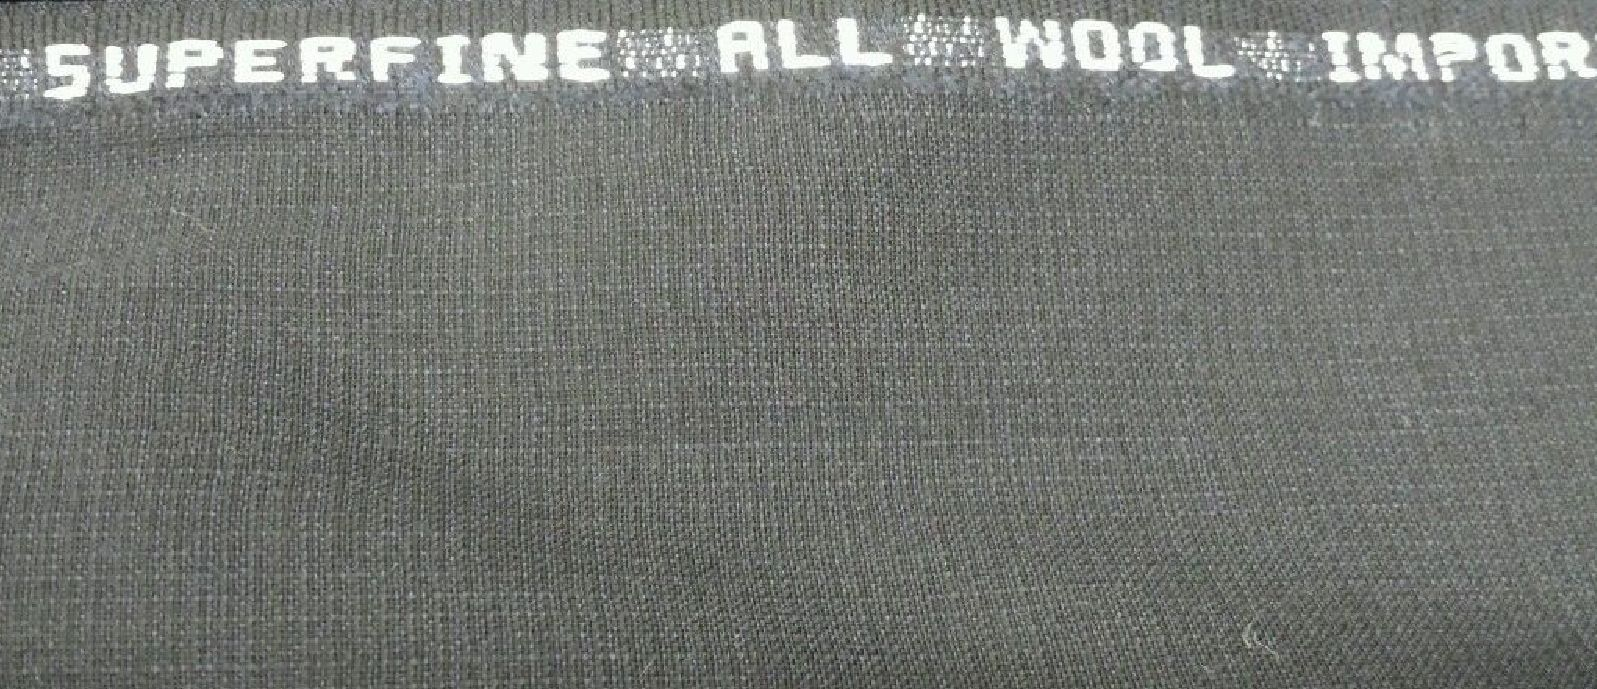 Superfine120'S Italian Wool Suit fabric    Navy PKAY 6.5 Yards MSRP 975